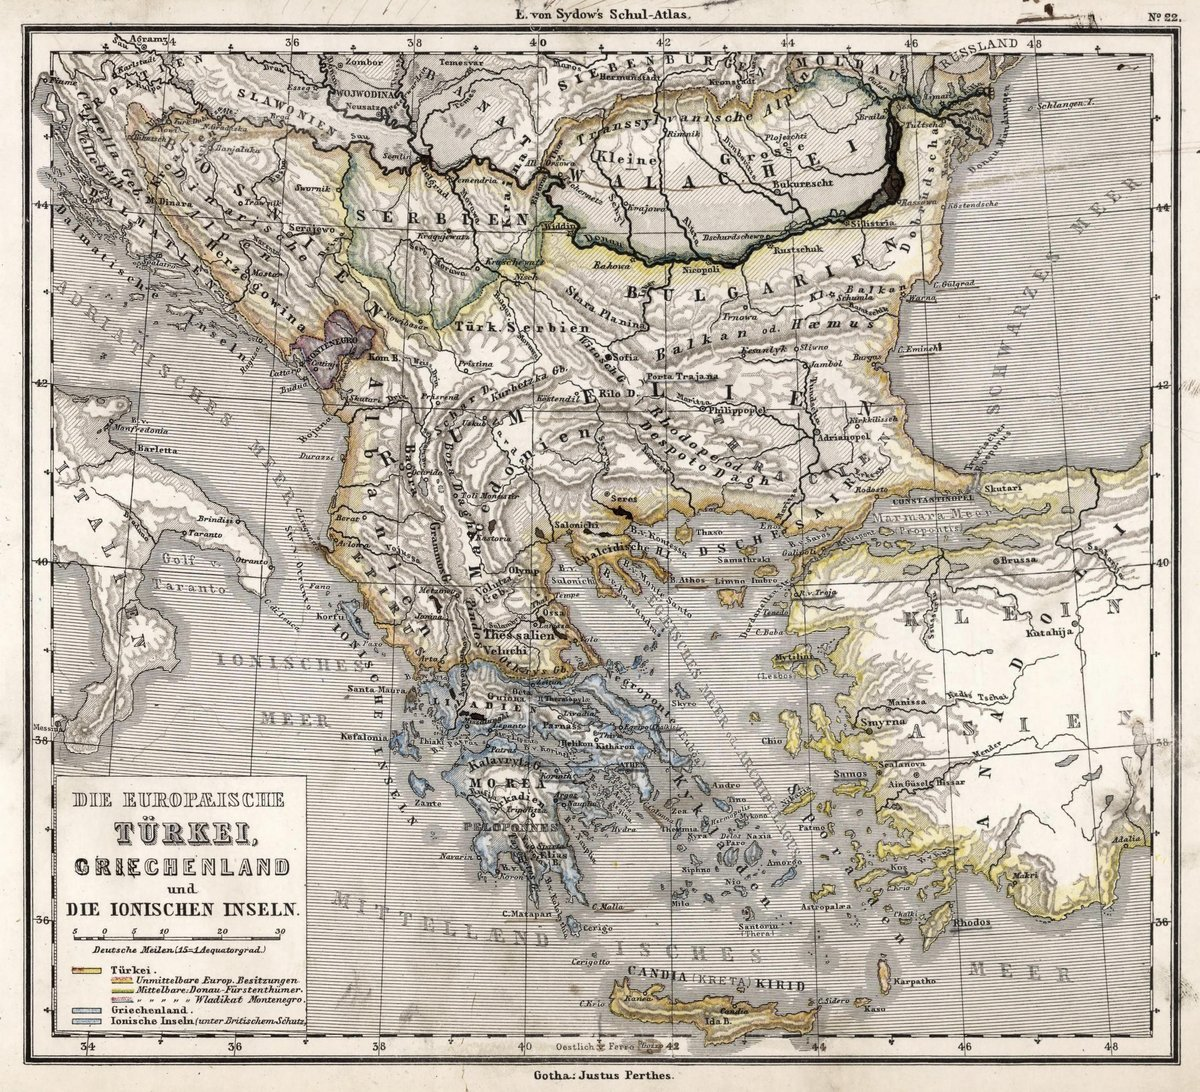 1872 School Atlas | 22. European Turkey, Greece and the Ionian islands. | Antique Vintage Map Reprint